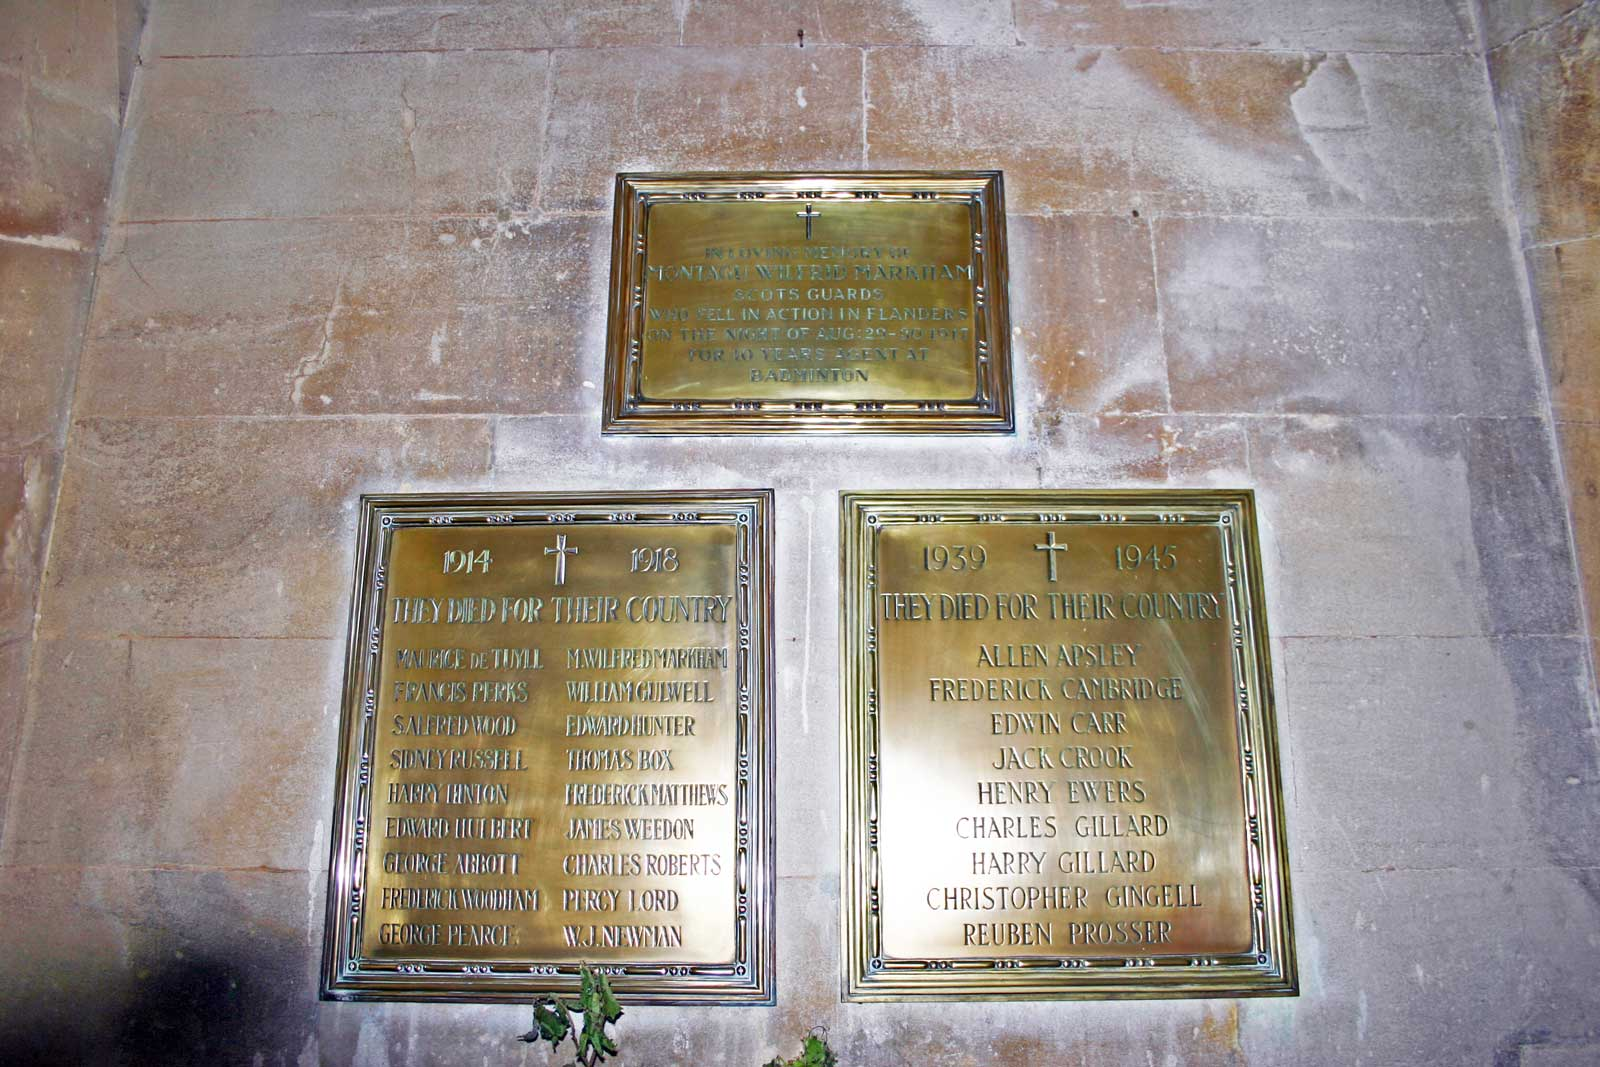 The Badminton War Memorial Plaques